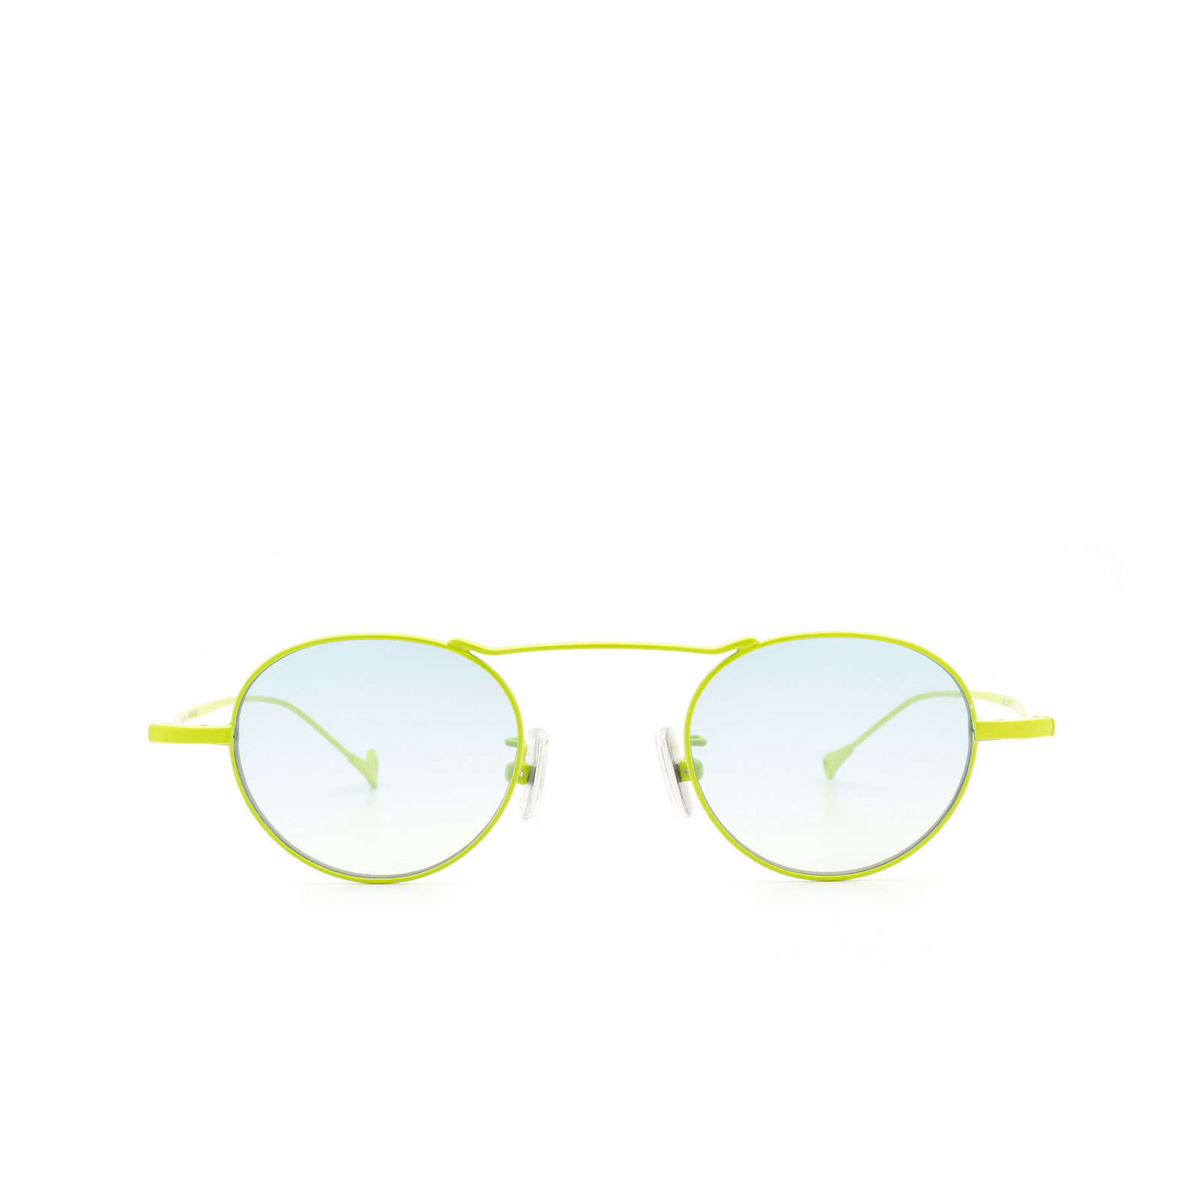 Eyepetizer® Round Sunglasses: Yves color Green Lime C.12-23F - front view.